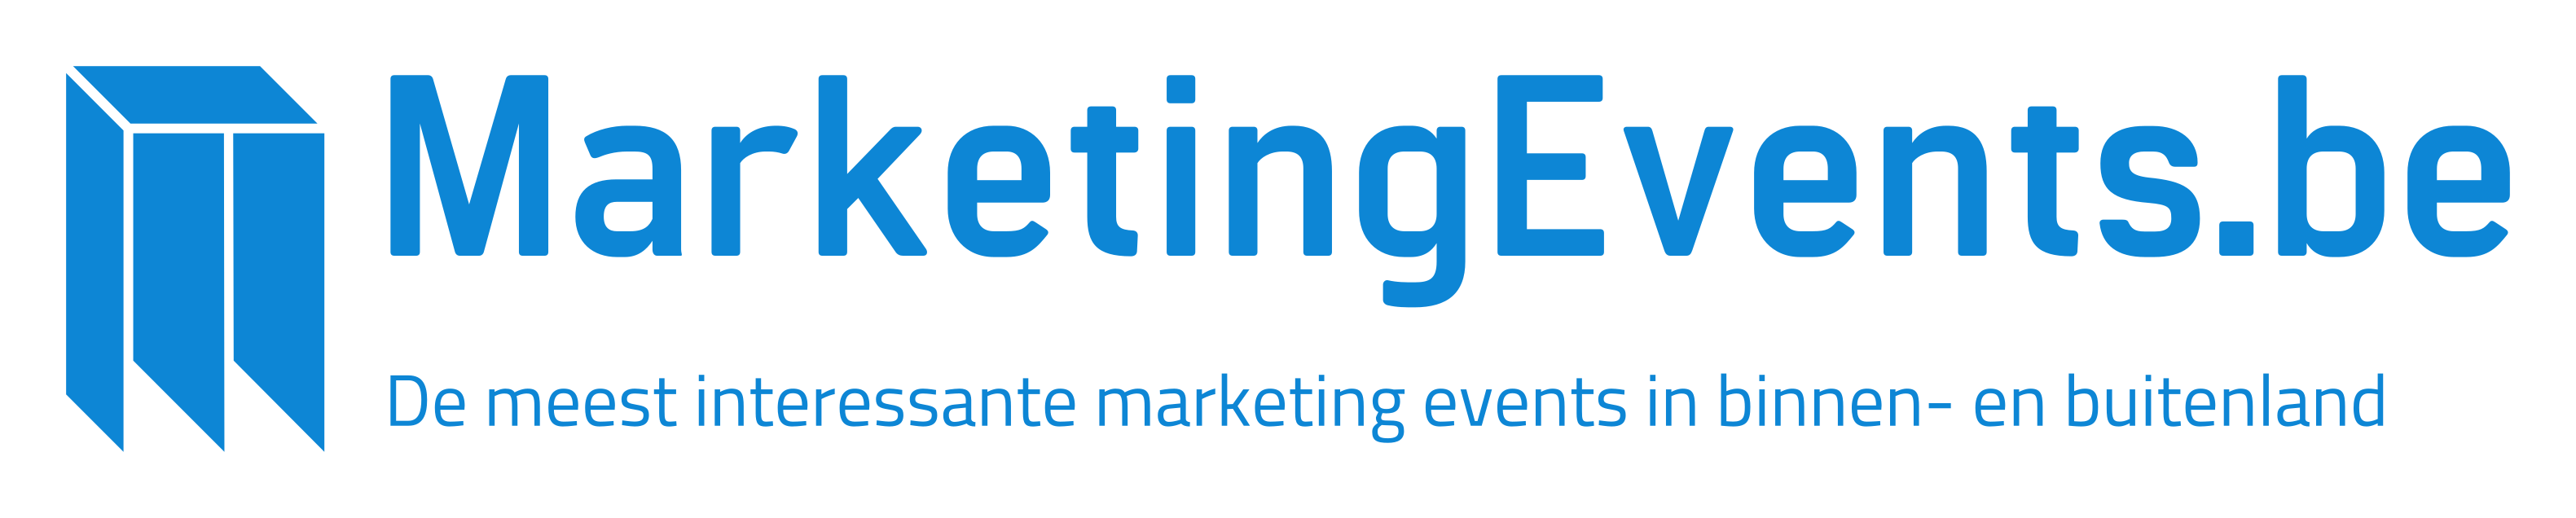 MarketingEvents